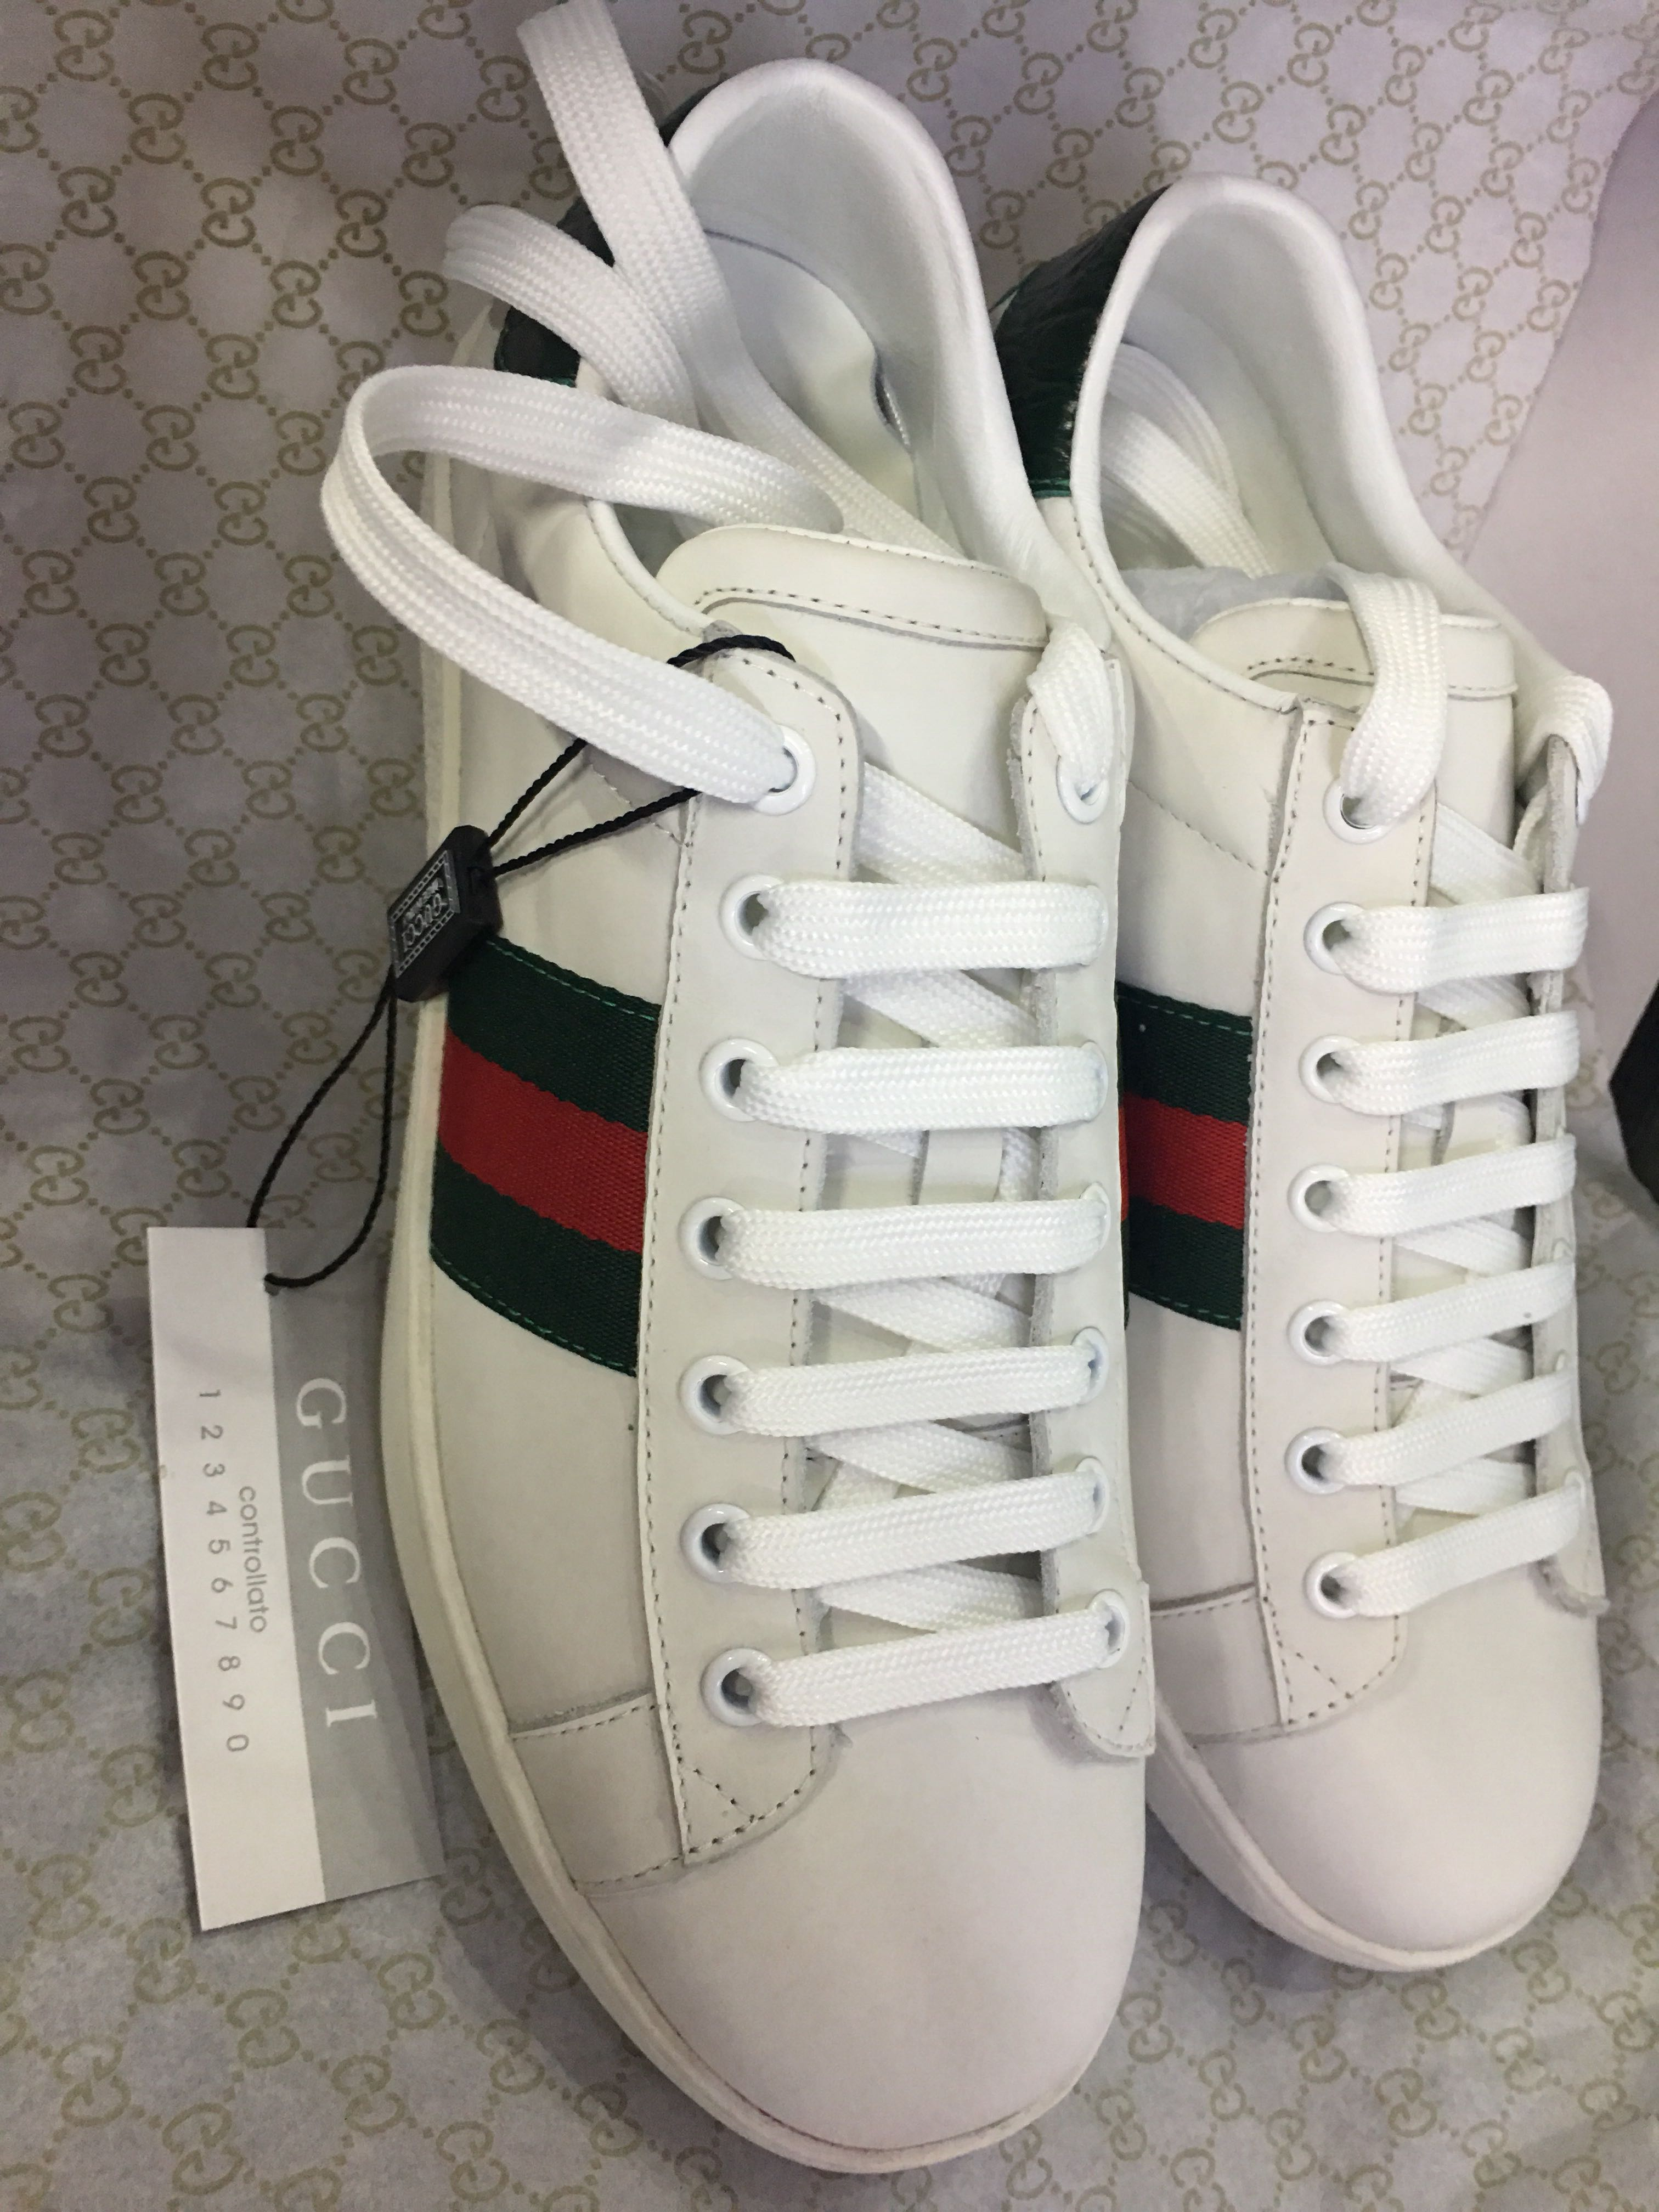 568207f5203 Gucci sneakers shoes size 35-40 Authentic Grade Quality